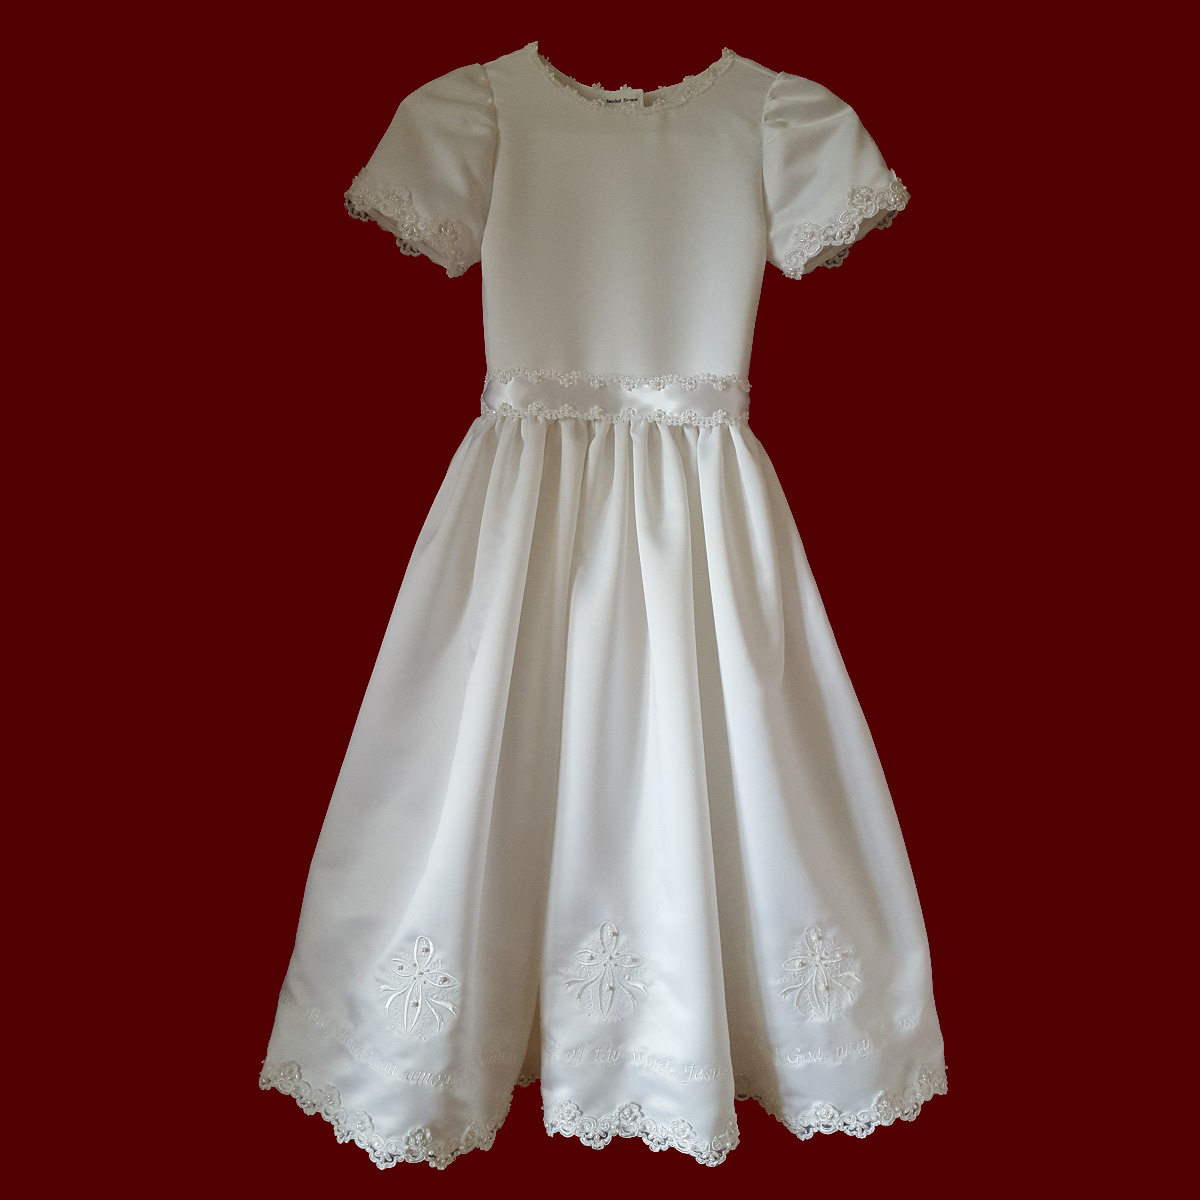 Hail Mary First Communion Dress With Embroidered Crosses And Beaded Lace